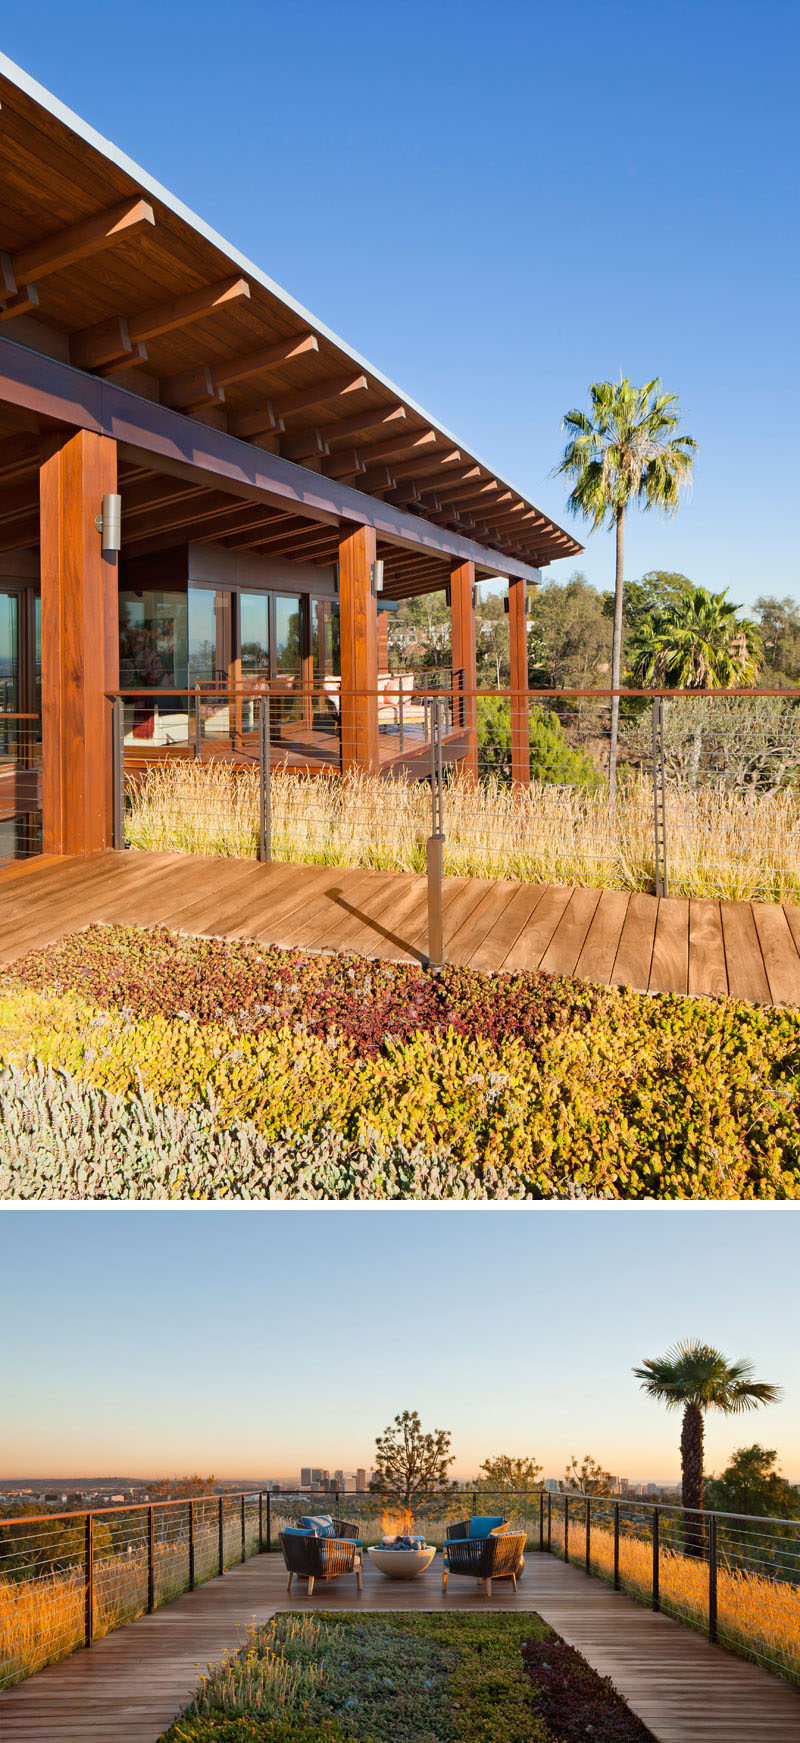 This modern house has a green roof where there's a small deck set up with lounge chairs and a firebowl, that overlooks the neighborhood. #GreenRoof #RooftopDeck #FireBowl